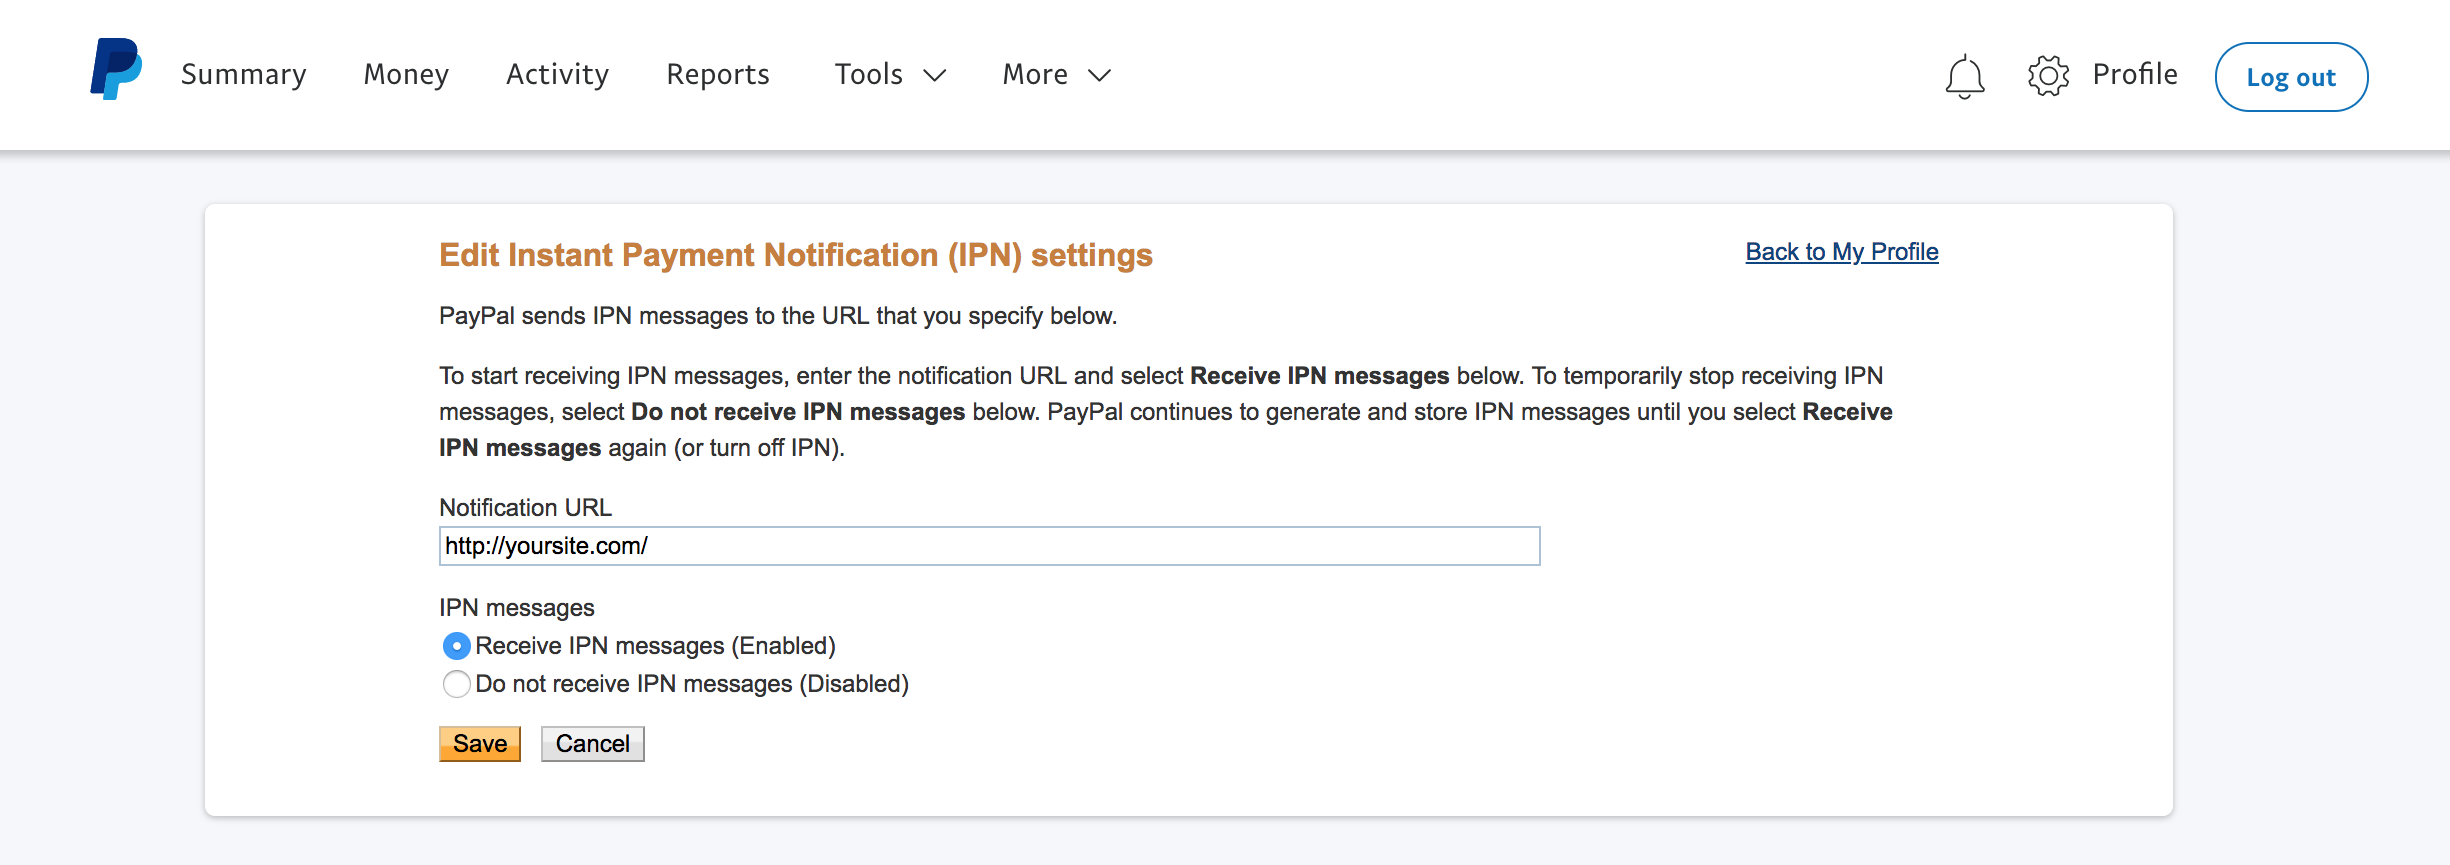 enter your sites address in the the notification url field and choose receive ipn messages enabled and save your settings